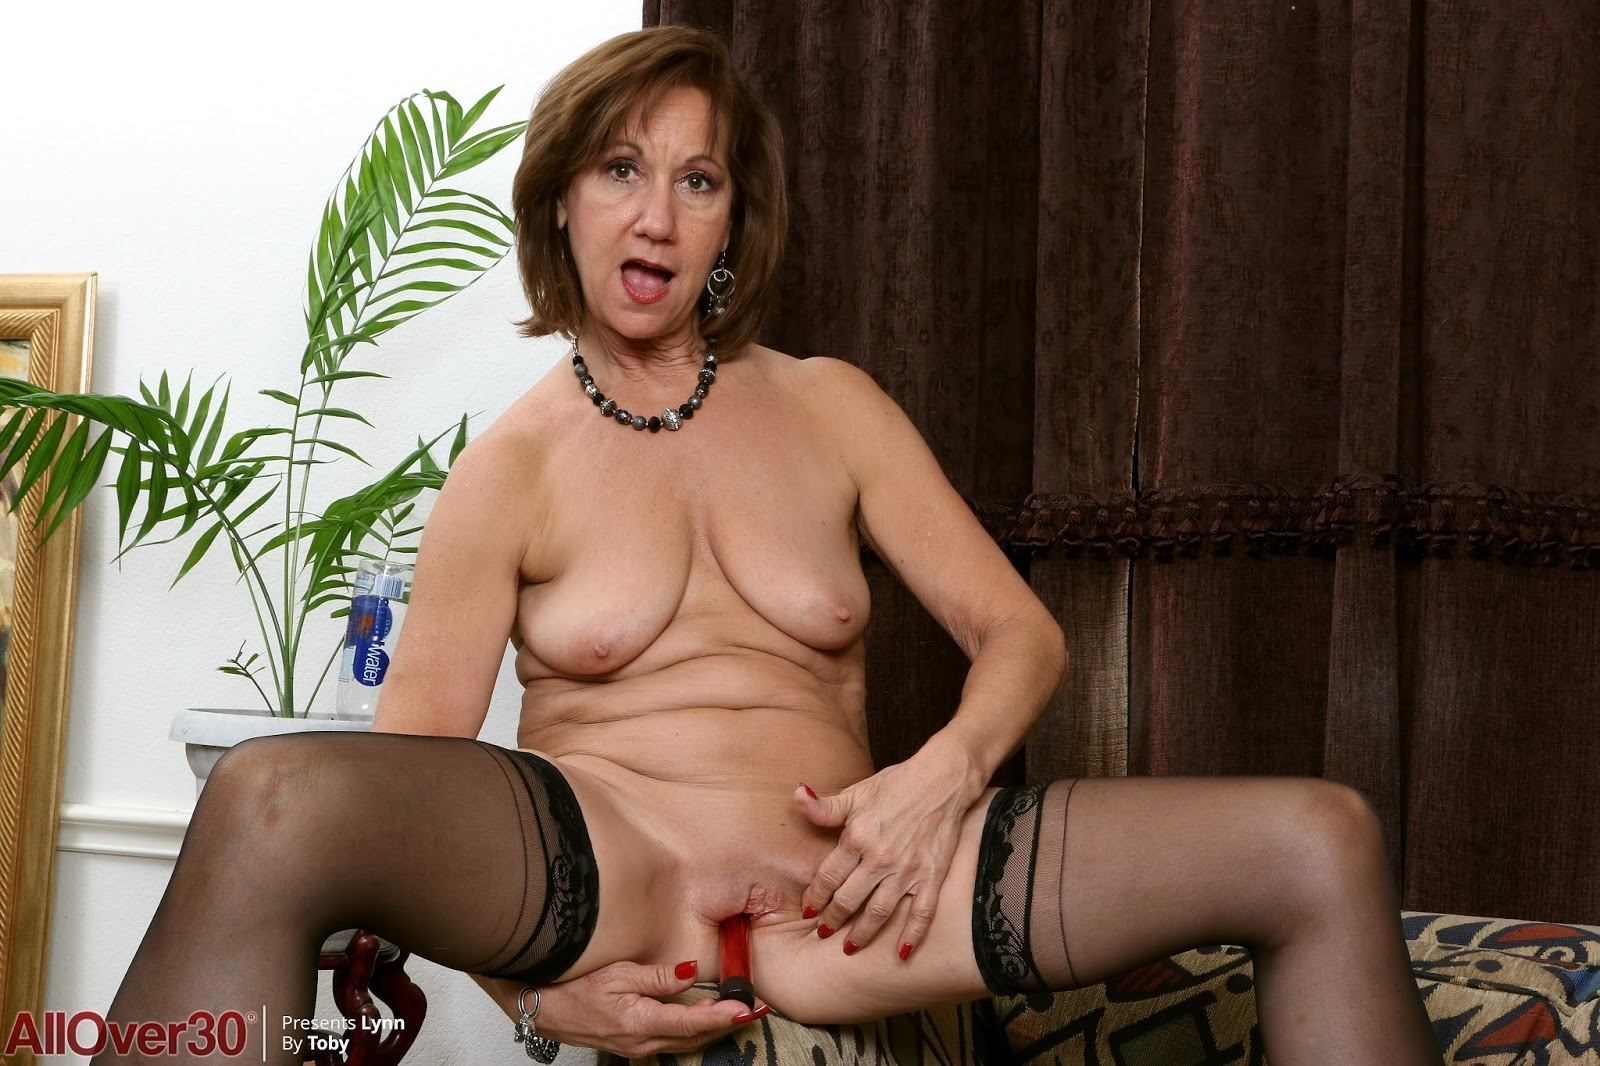 Archive Of Old Women Lynn Mature Pics  Video-7131